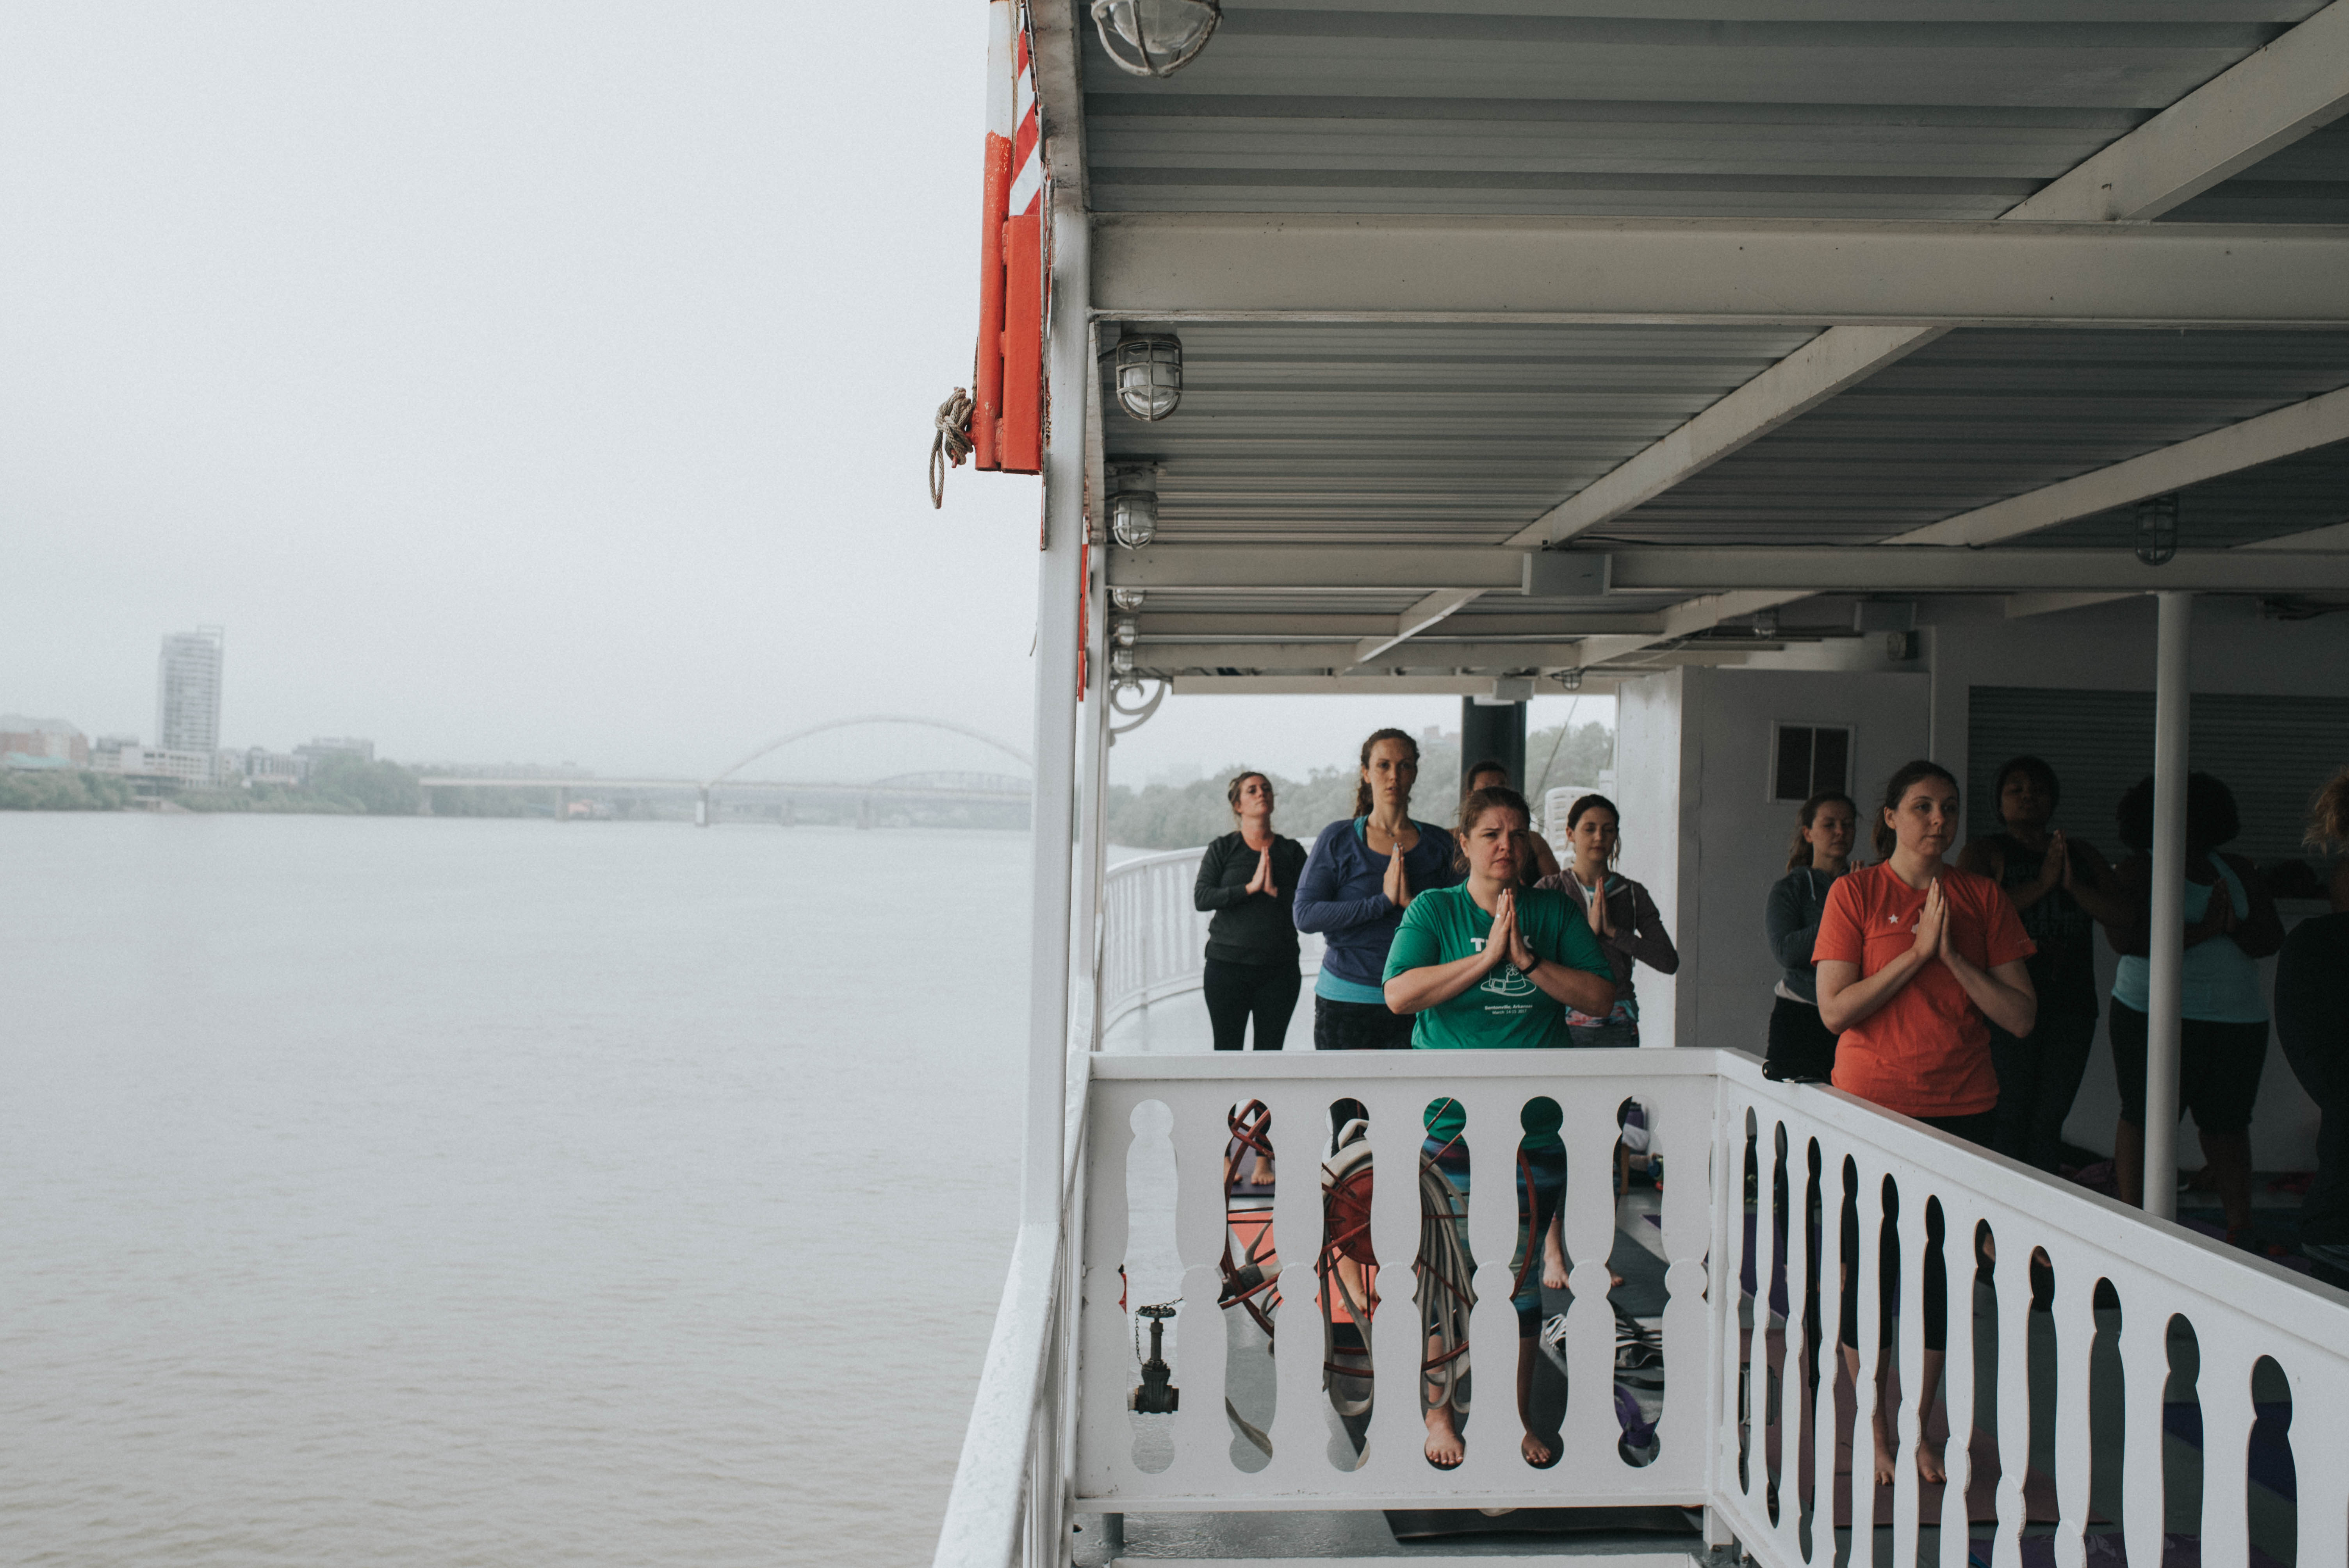 Sunrise Riverboat Yoga is an hour long yoga class guided by instructor Trisha Durham and held on one of B&B Riverboat's vessels. The class is meant to inspire yogis to be like water while on the water. Head to www.trisha.yoga to see a list of upcoming events. / Image: Brianna Long // Published: 5.29.17